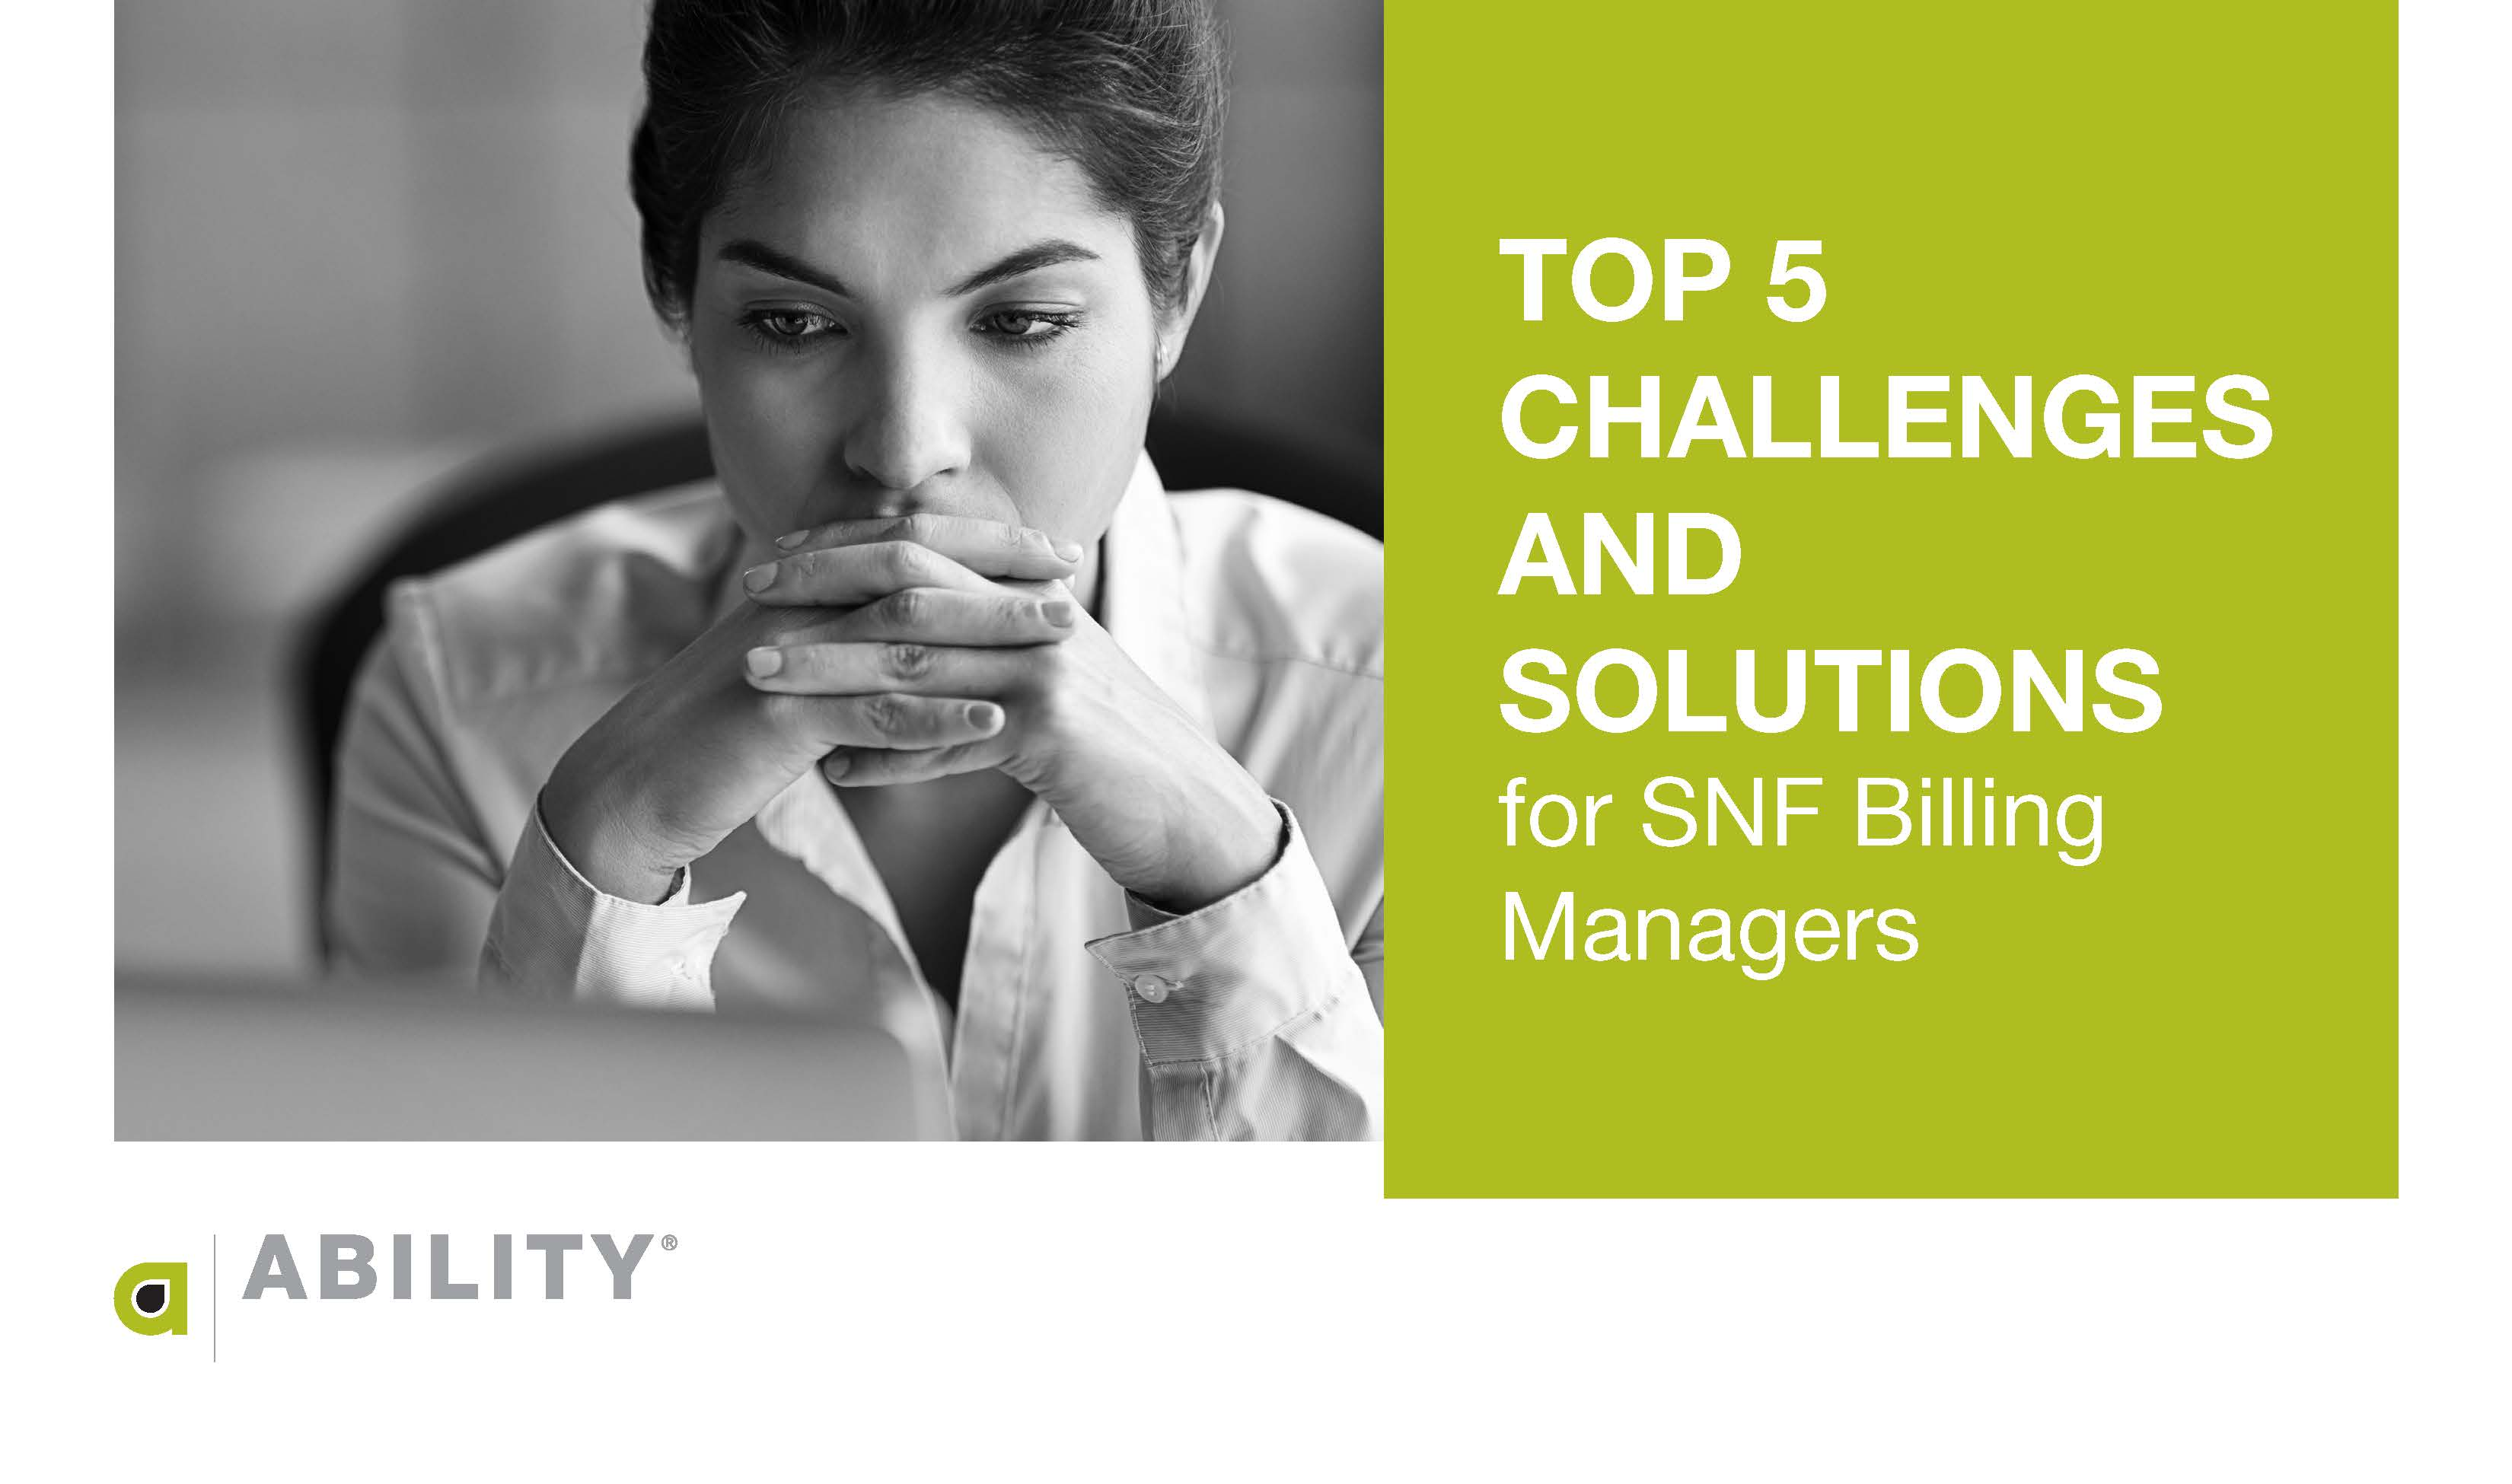 Top 5 Challenges and Solutions for SNF Billing Managers